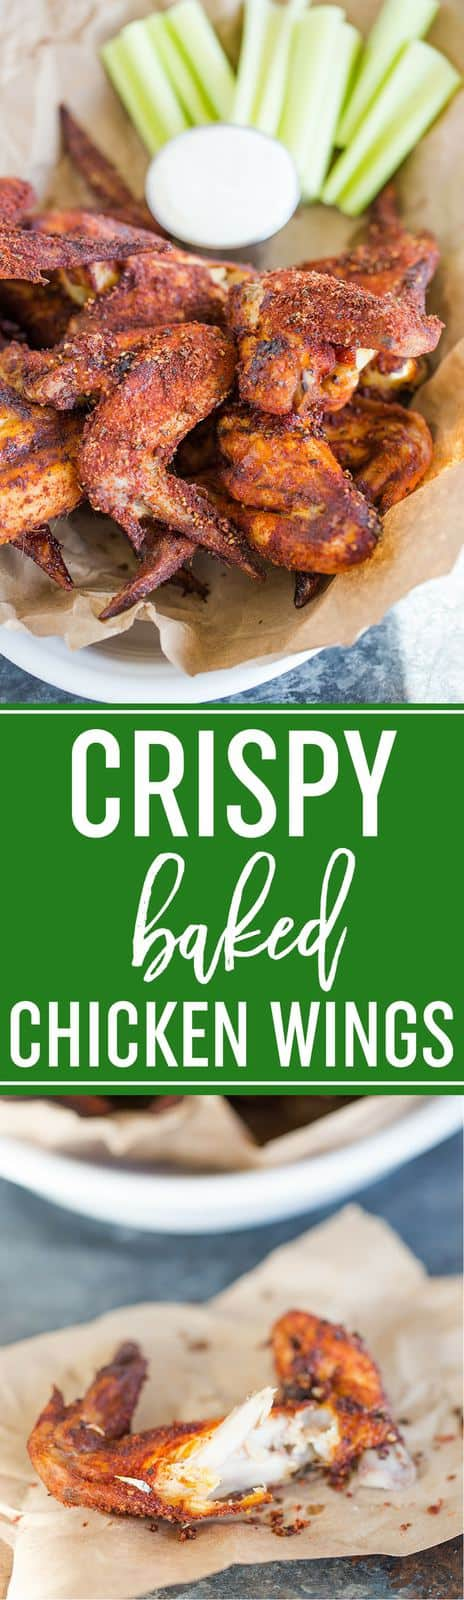 Crispy Baked Chicken Wings :: You'll never believe these chicken wings were baked in the oven! Super easy, crispy skin, and meat that falls off the bone. #recipe #chickenwings #superbowl #appetizers